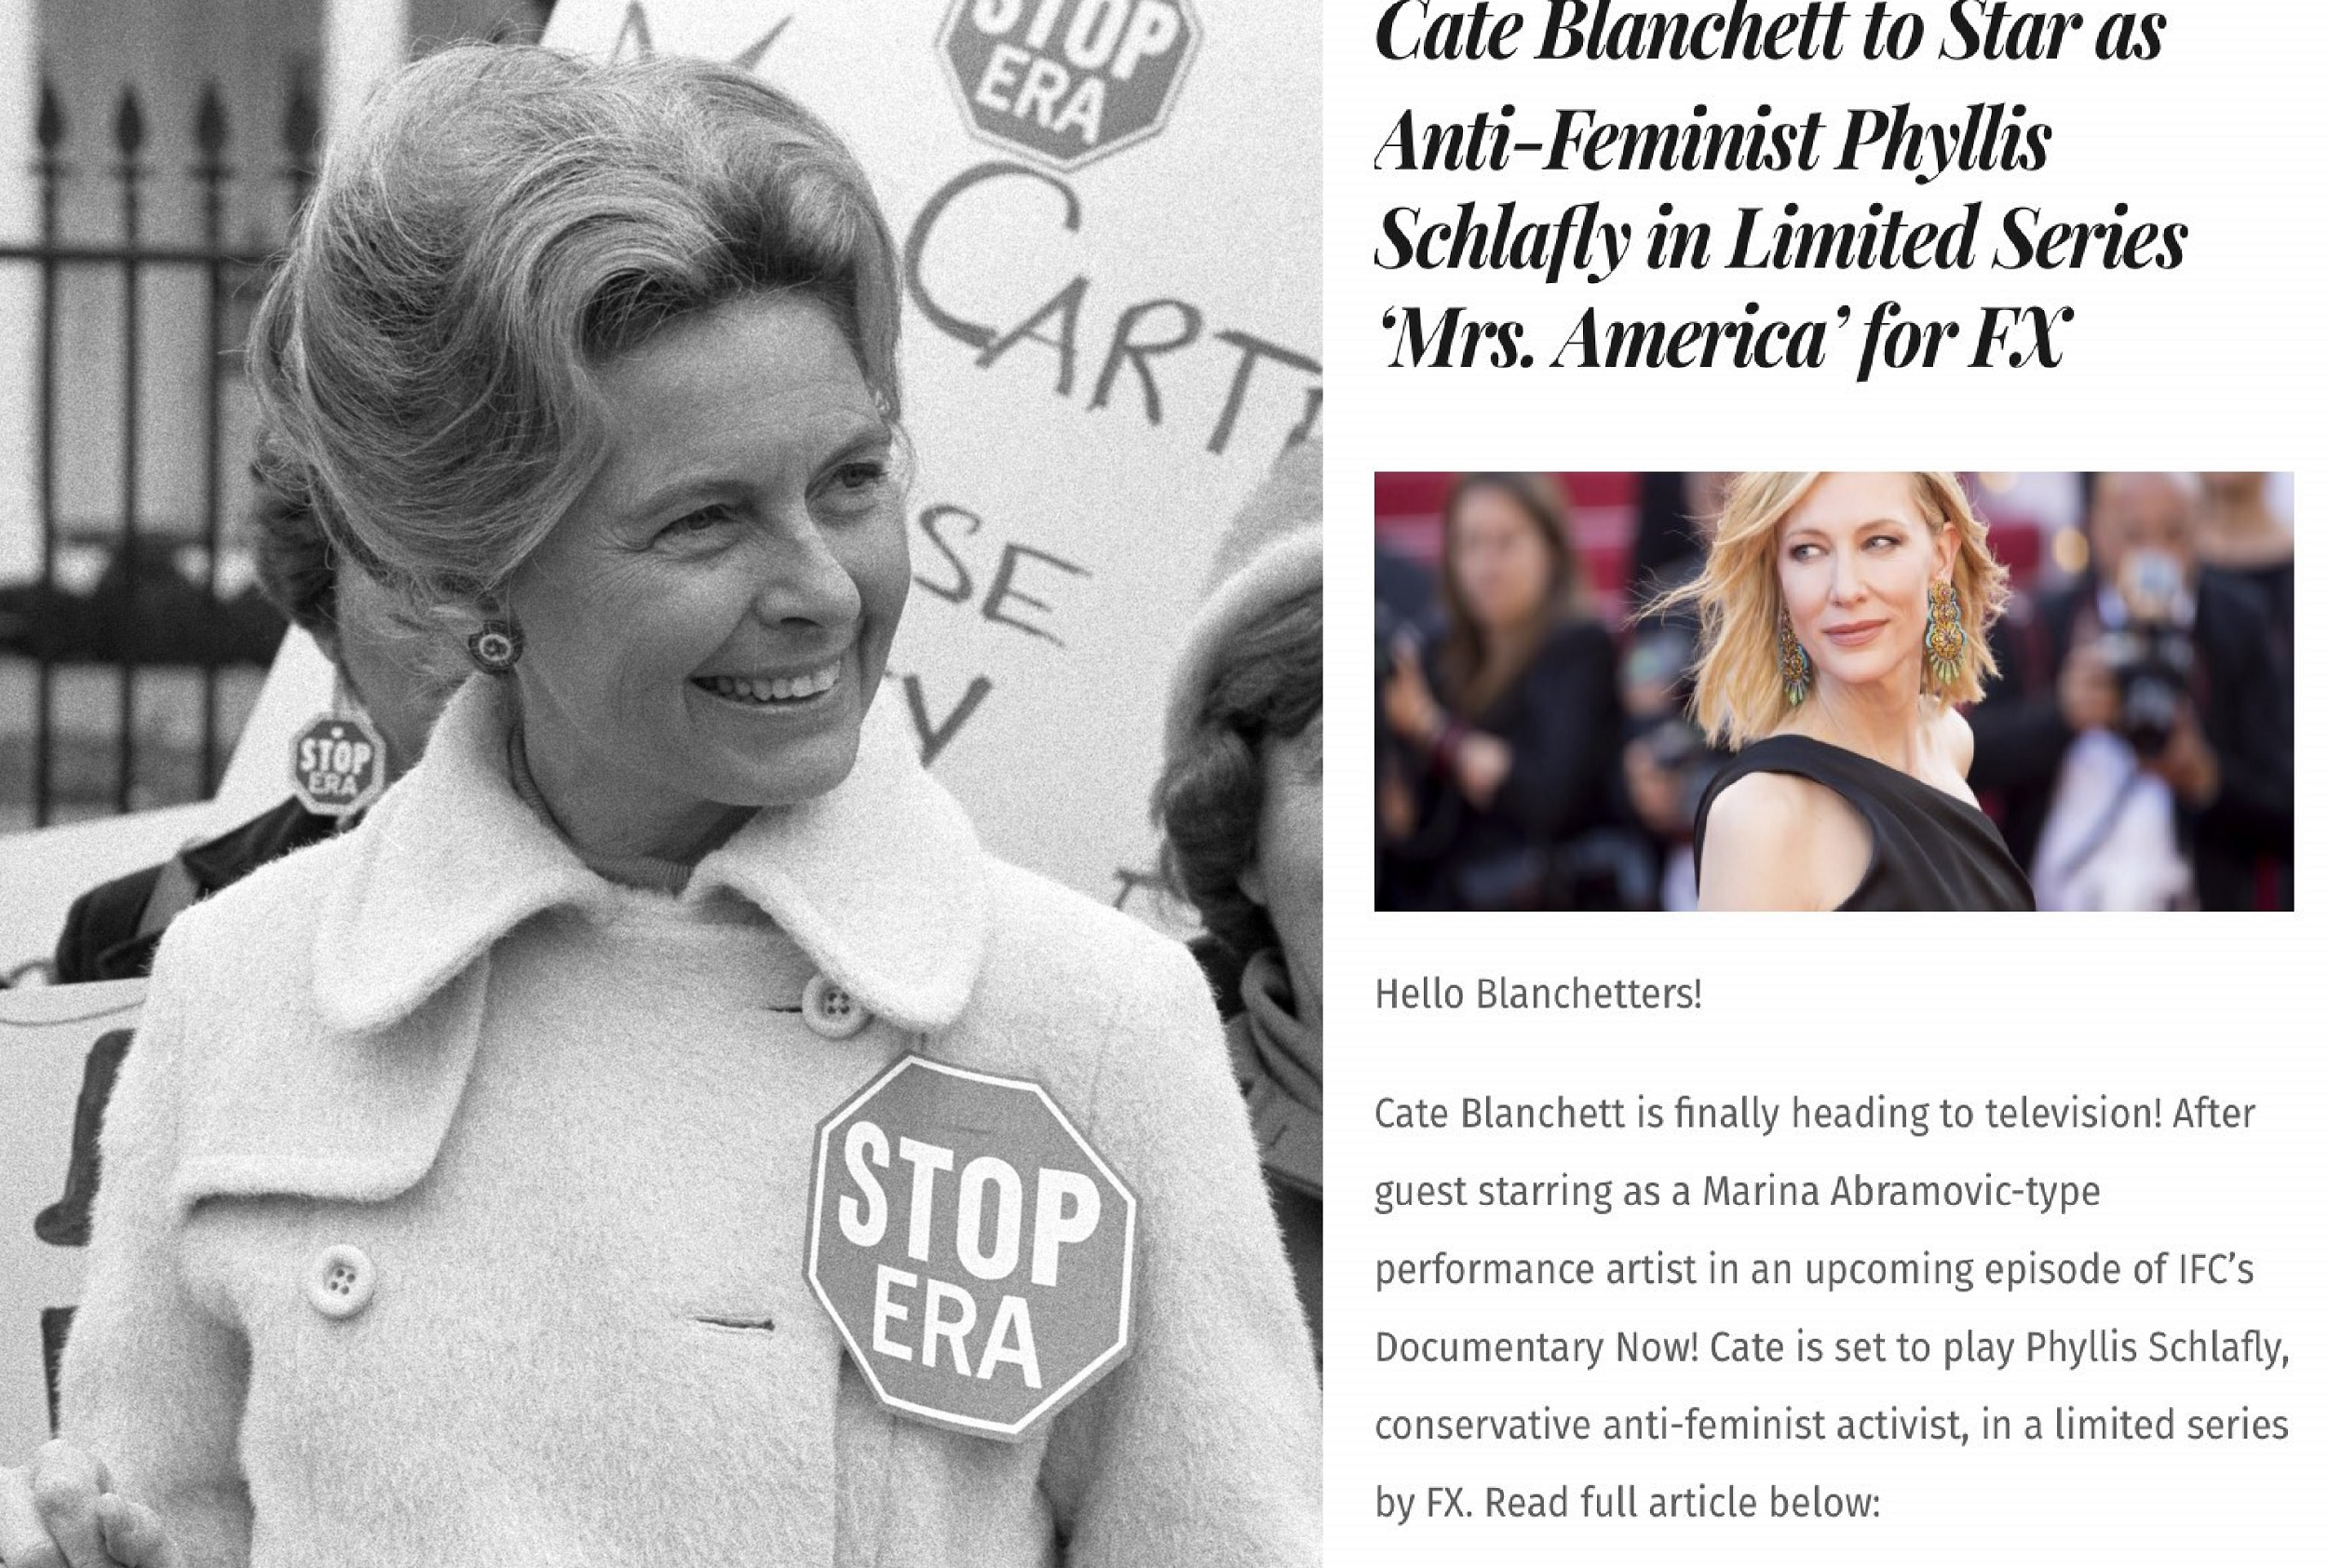 Cate Blanchett to play Phyllis Schlafly collage-jpg.jpg